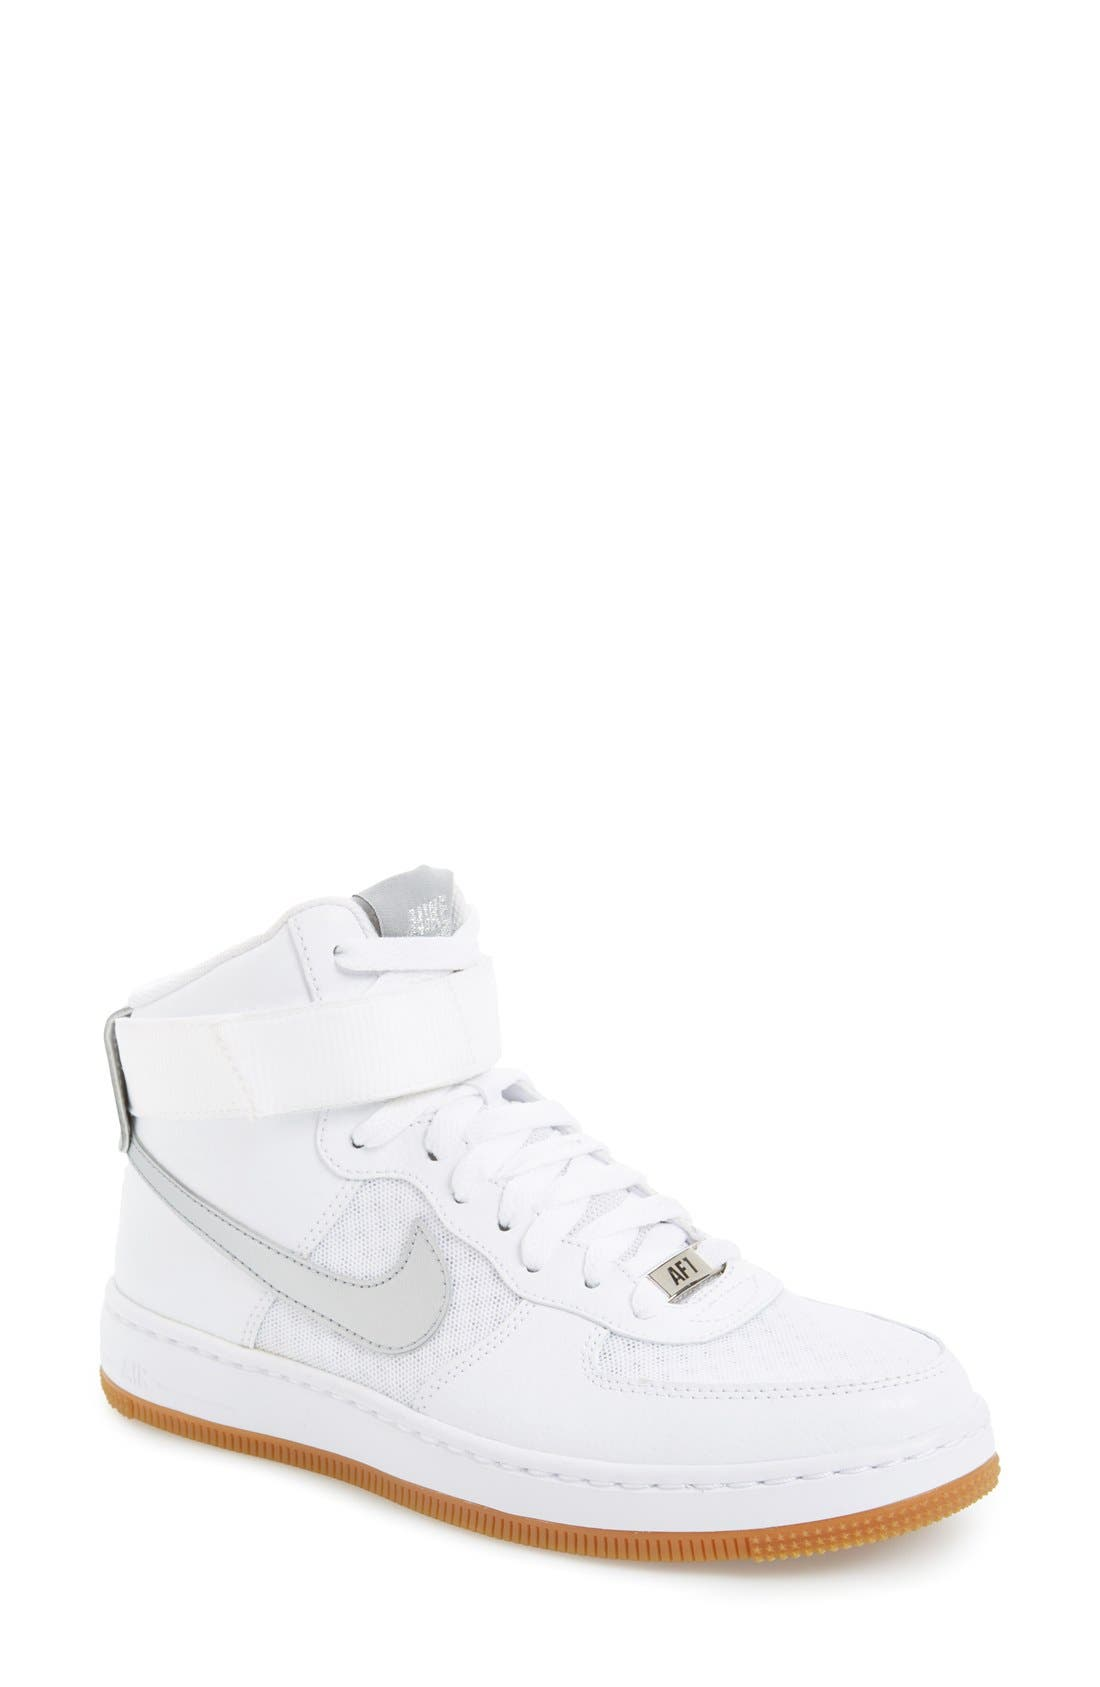 Alternate Image 1 Selected - Nike 'AF-1 Ultra Force Mid' High Top Sneaker (Women)